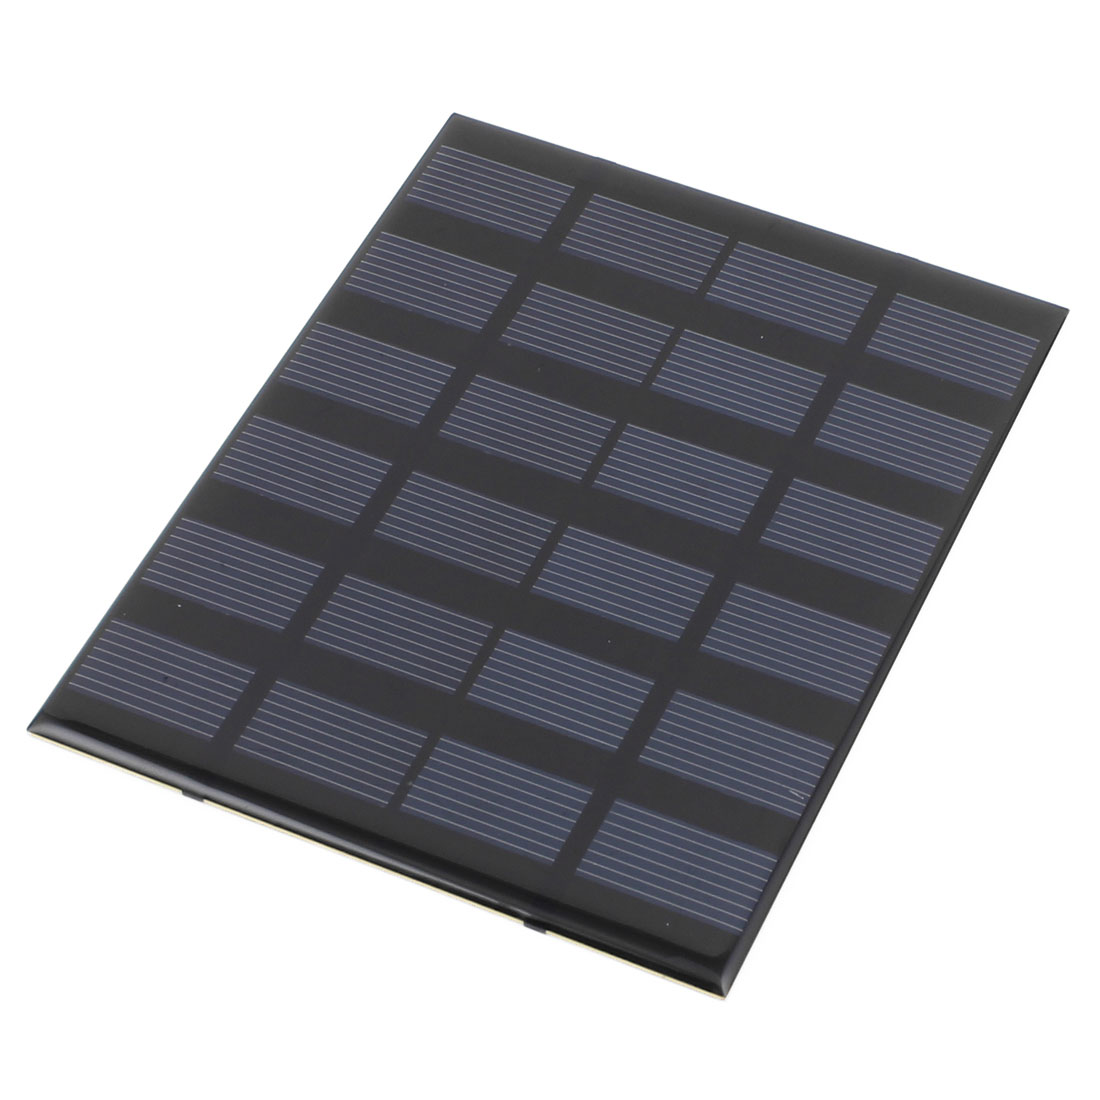 6V 1.5W DIY Polycrystallinesilicon Solar Panel Power Cell Battery Charger 140mm x 110mm